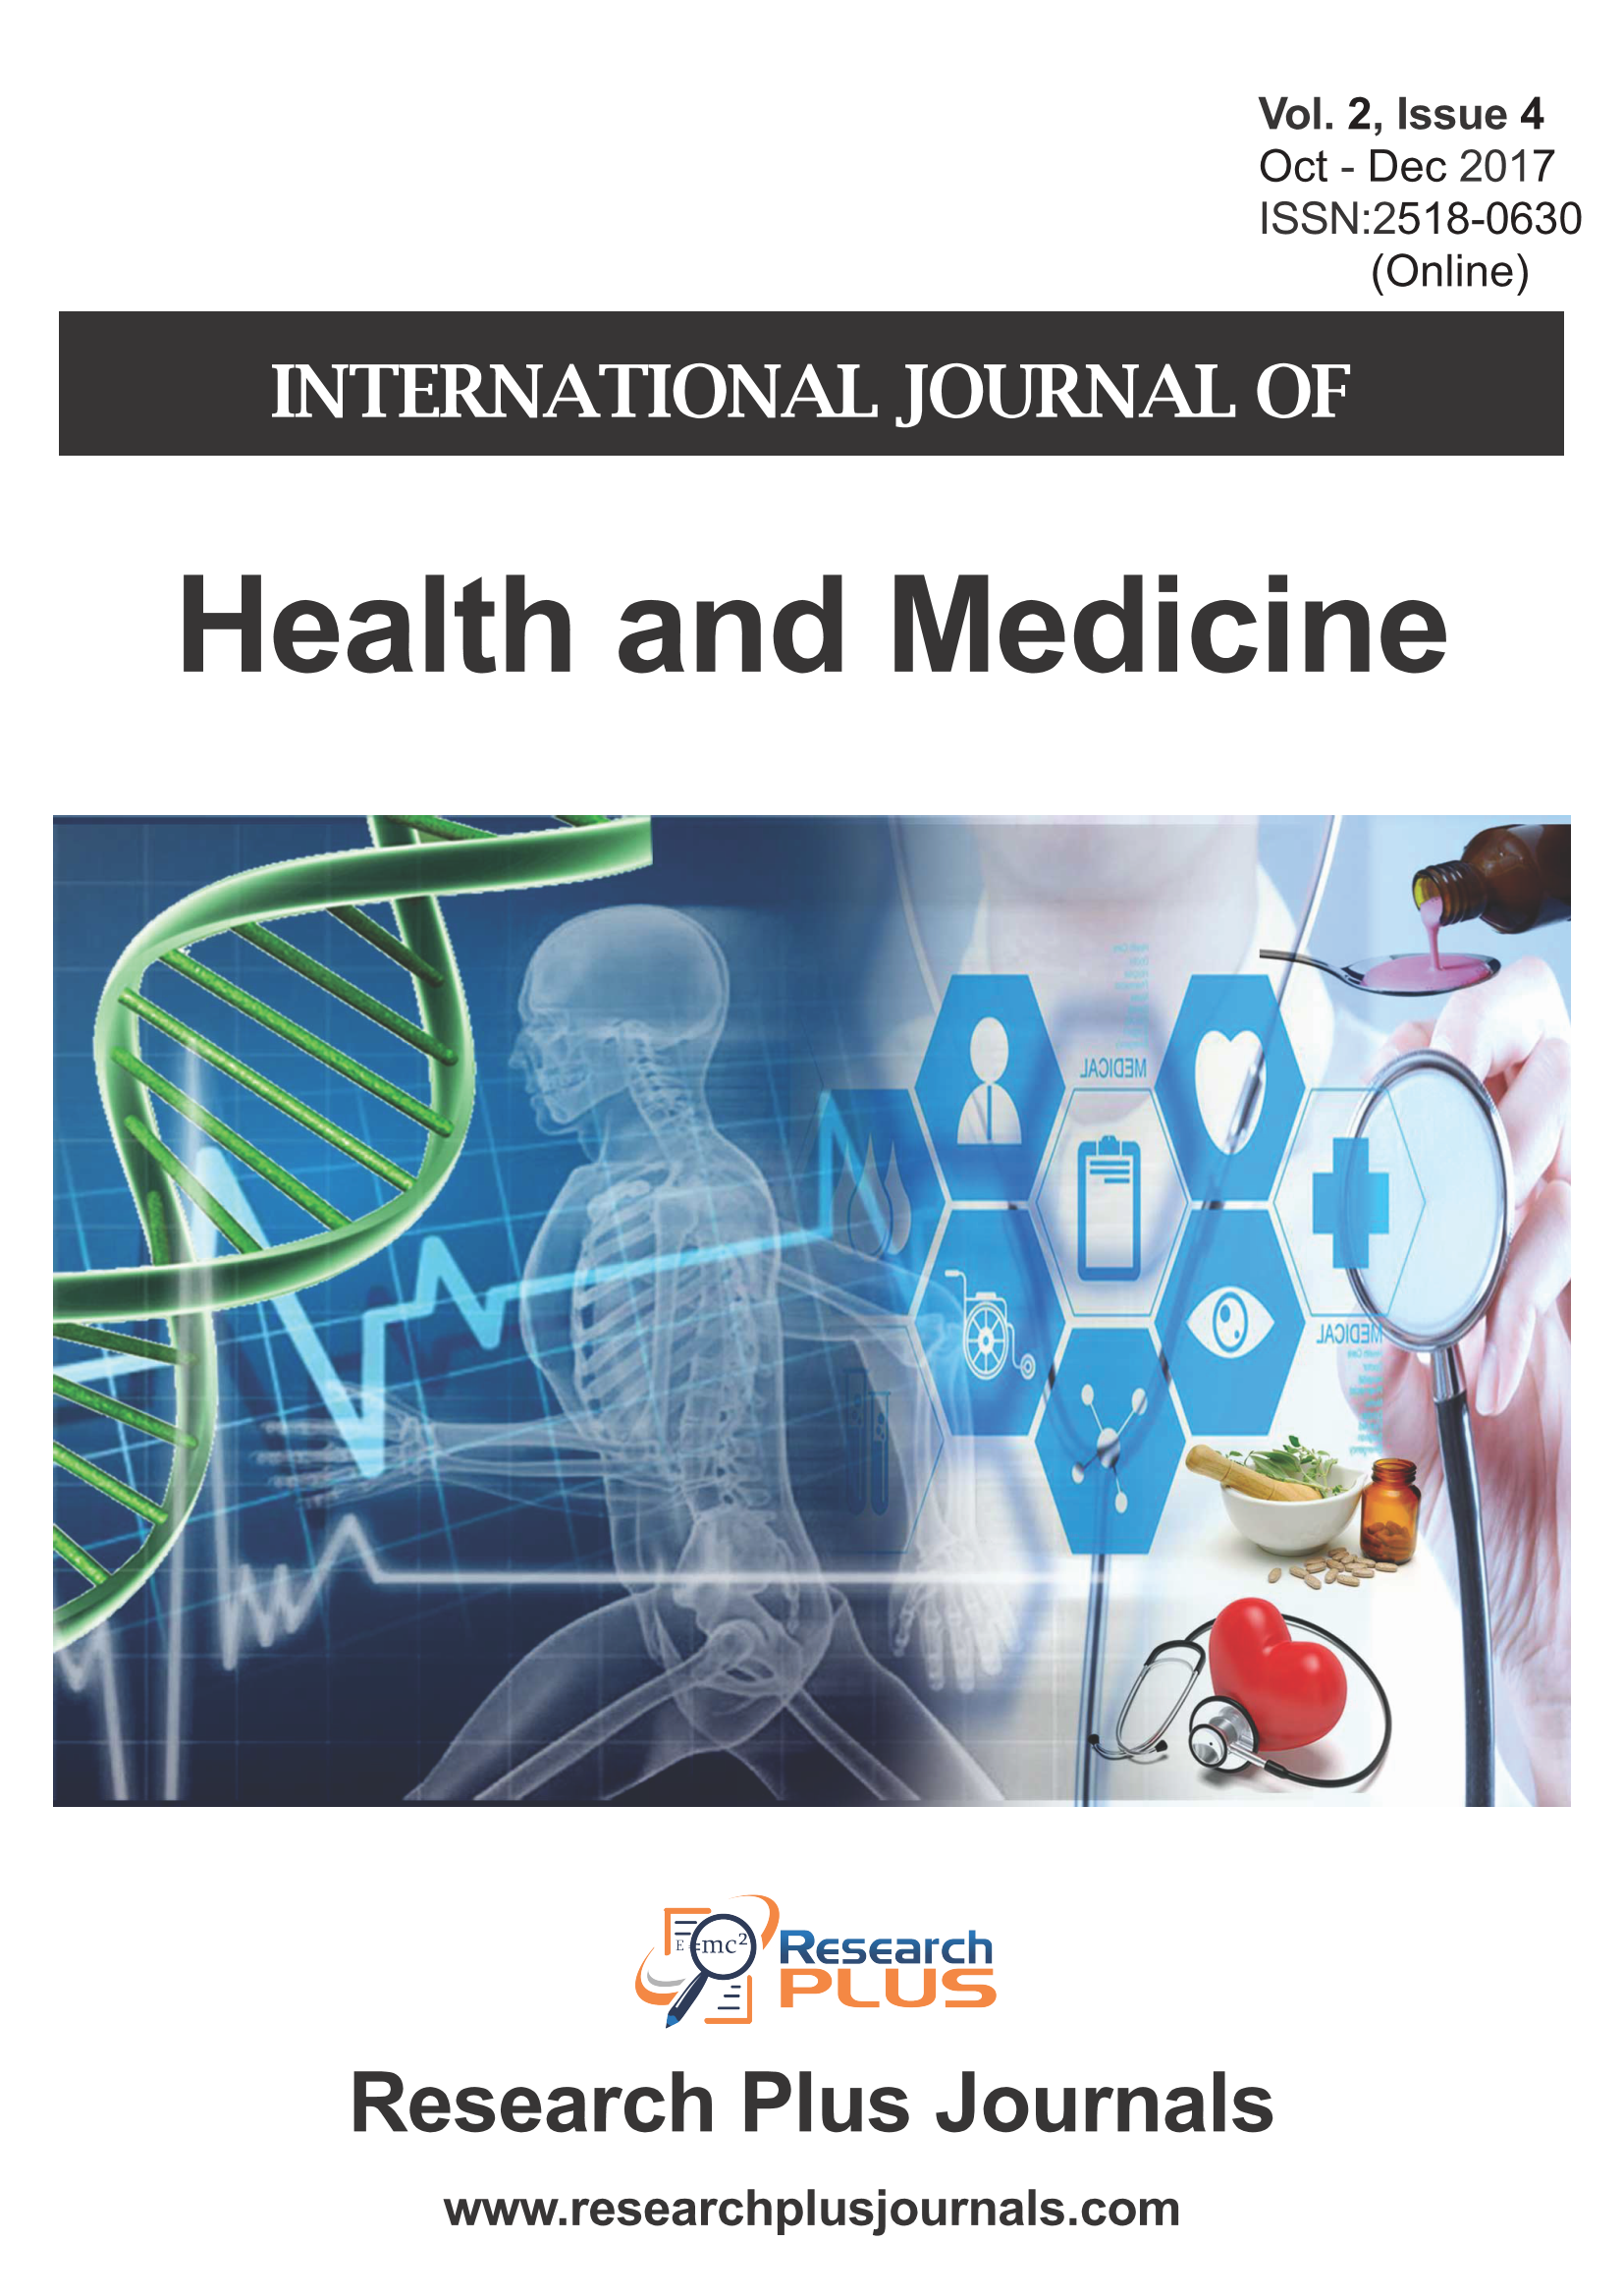 Volume 2, Issue 4, International Journal of Health and Medicine (IJHM) (Online ISSN: 2518-0630)